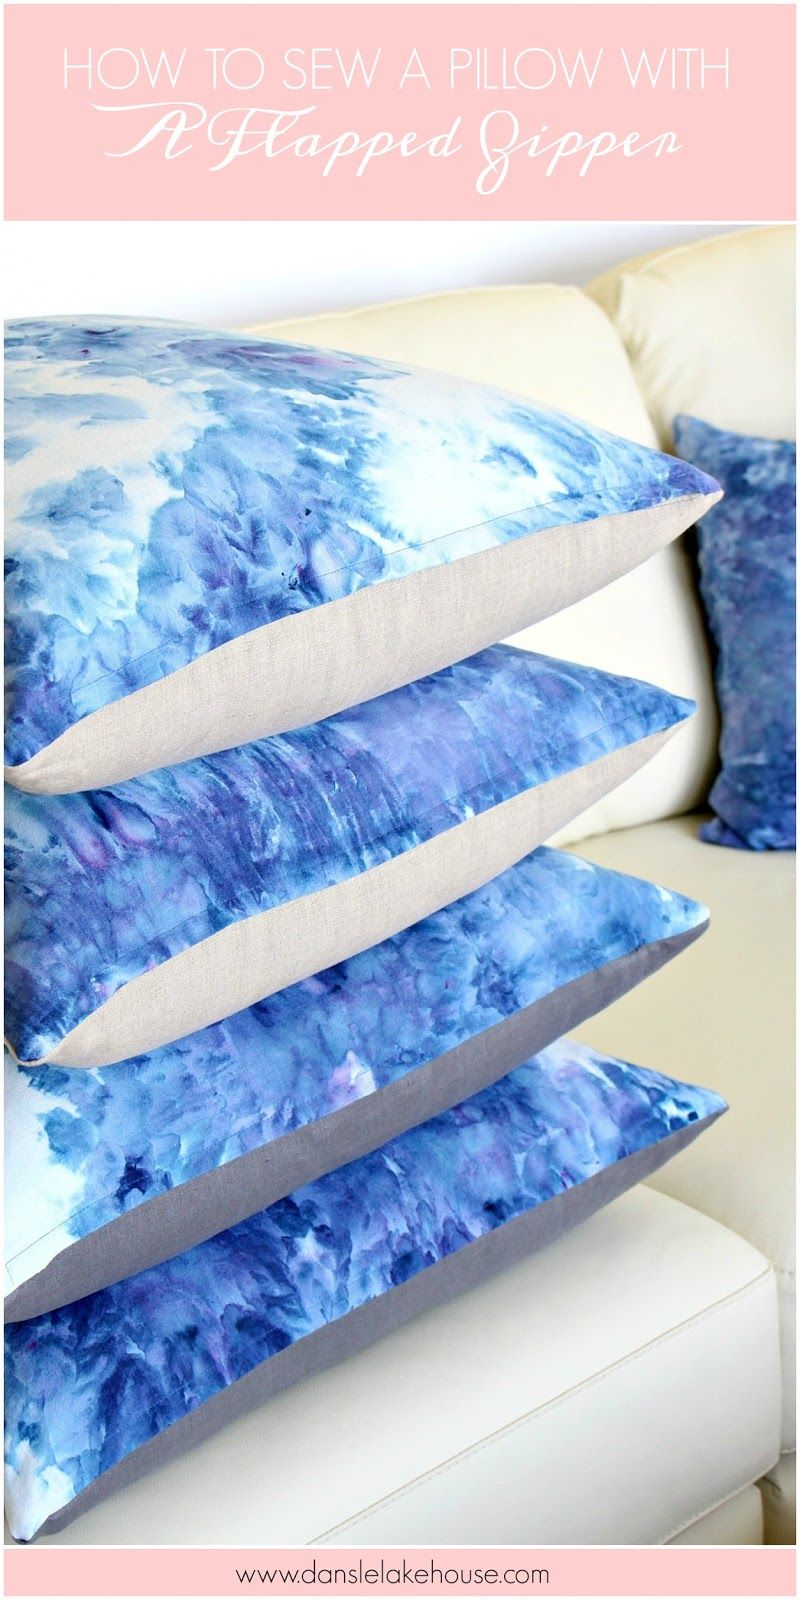 How to Sew a Pillow with a Flapped Zipper & How to Sew a Pillow with a Flapped Zipper | Pillows Sewing ... pillowsntoast.com